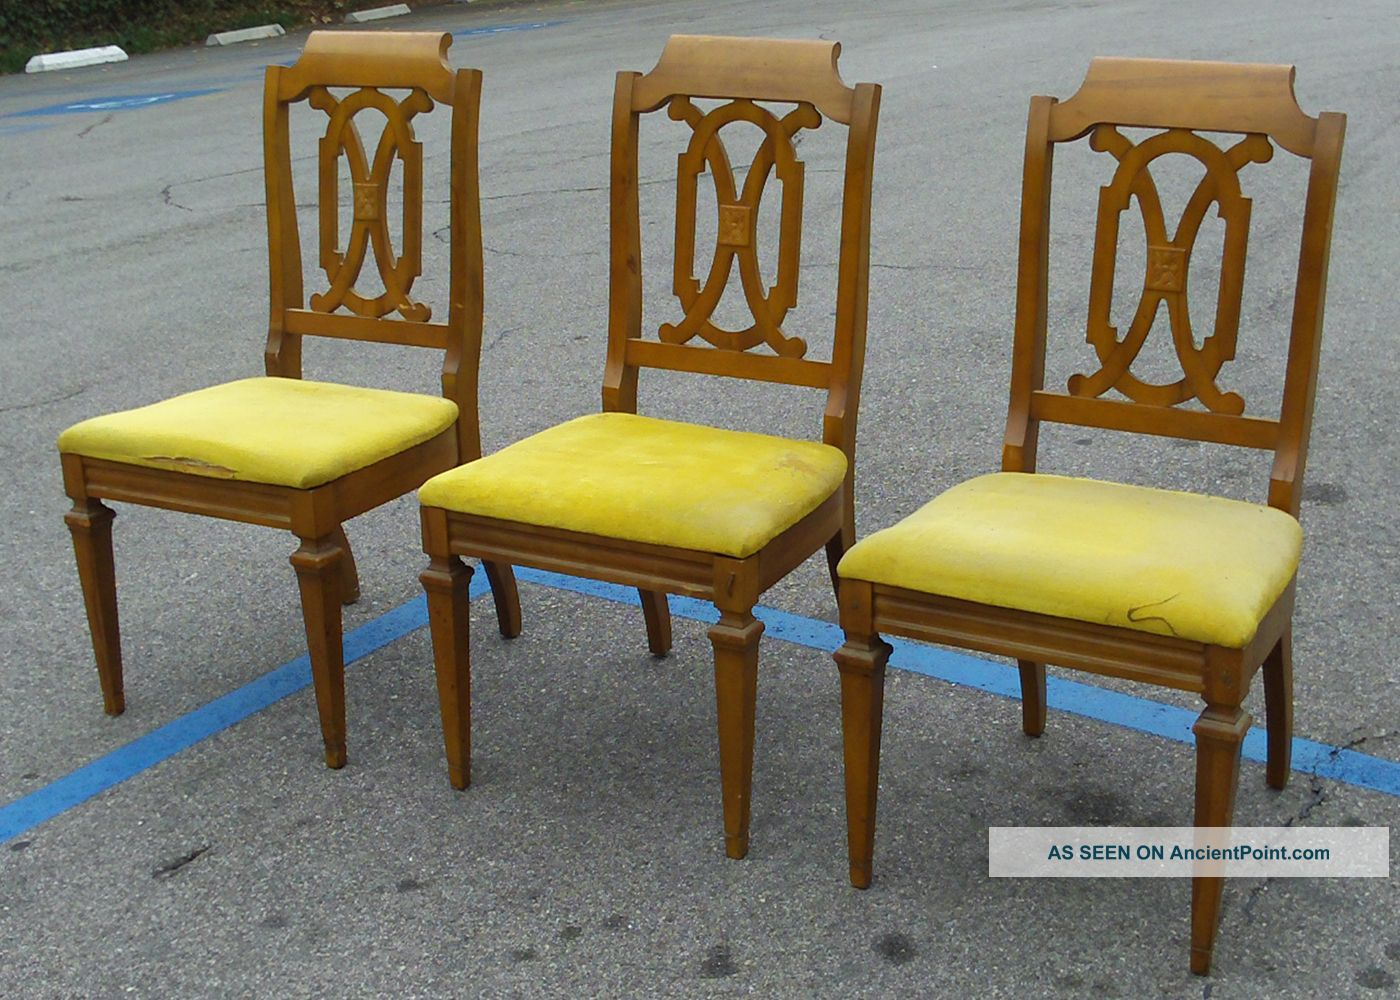 Vintage Hollywood Regency Curved Wood Dining Room Chairs Mustard Yellow Cushions Post-1950 photo